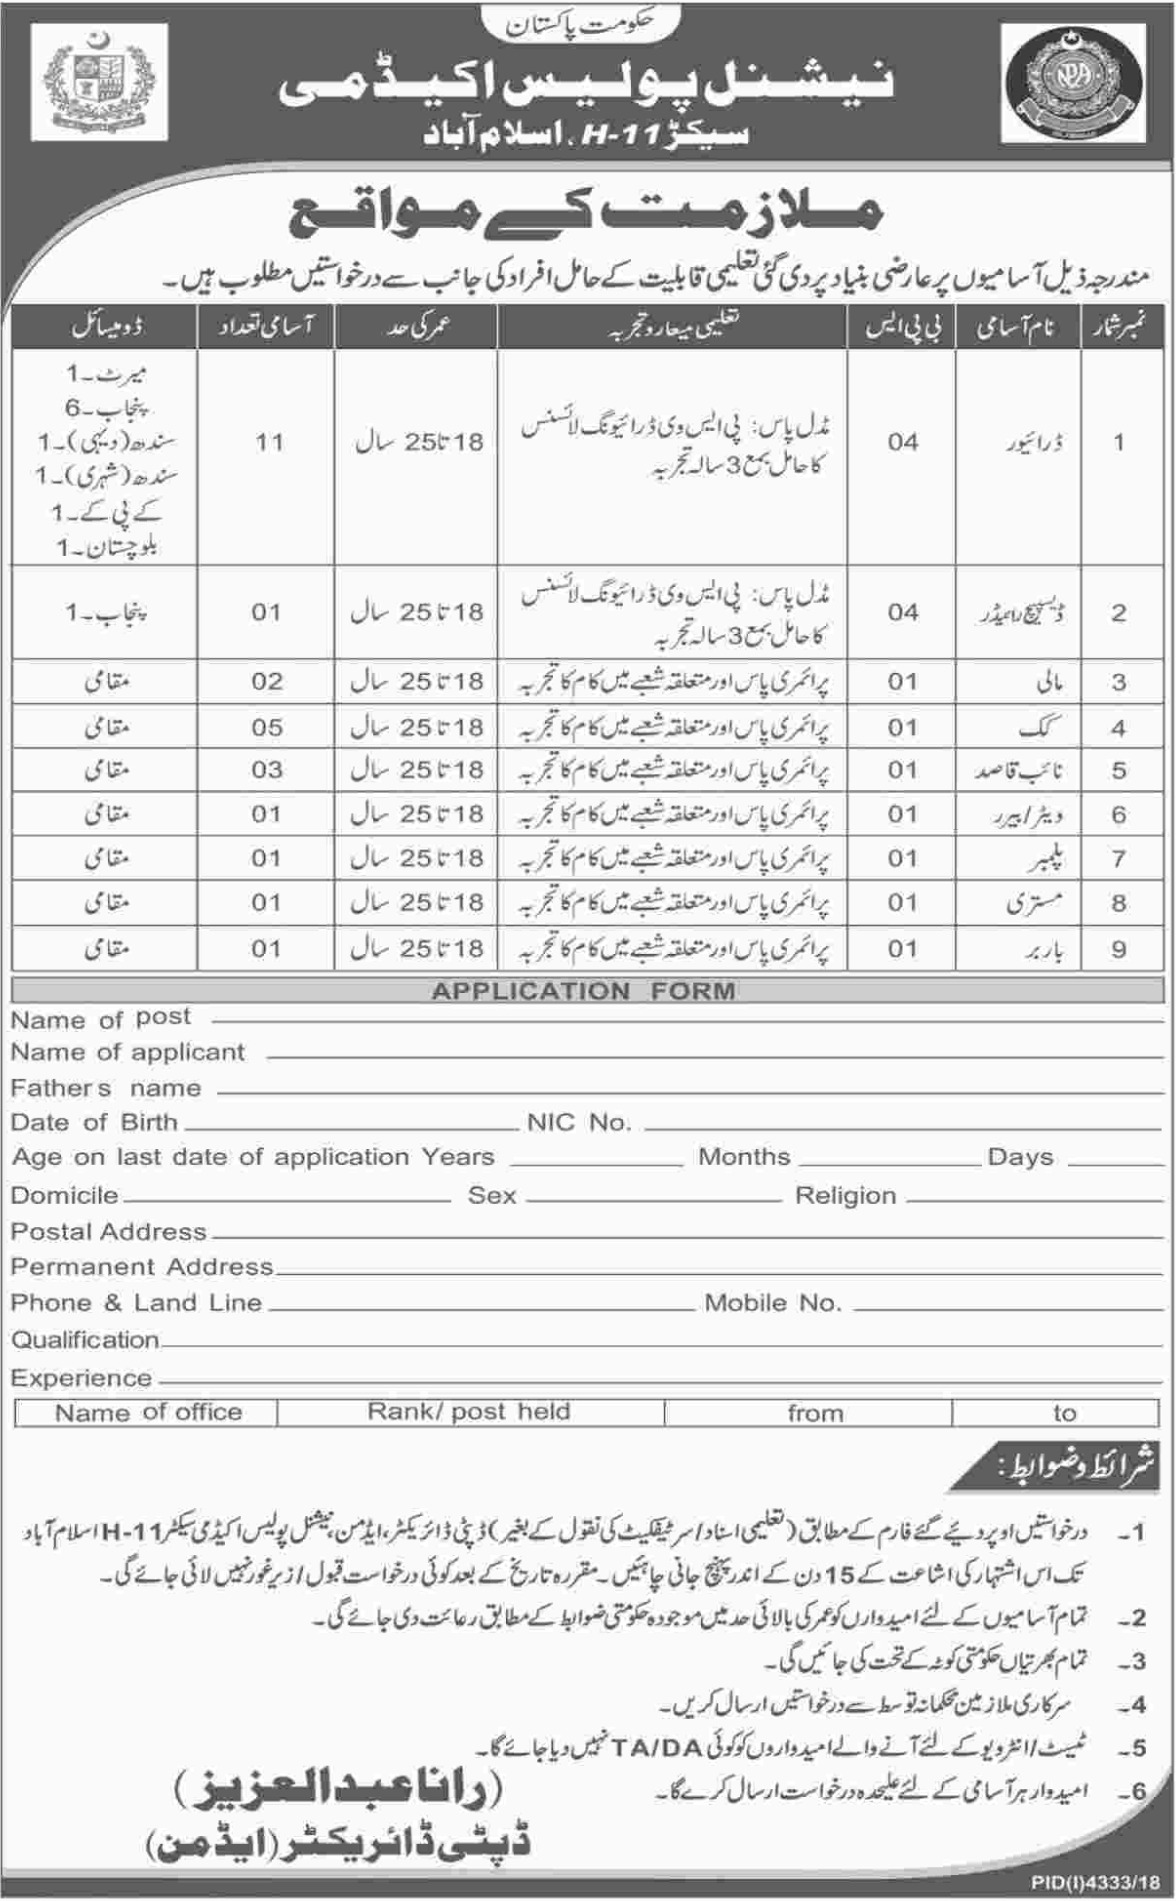 National Police Academy Islamabad Jobs 2019 Latest Paperpk Jobs